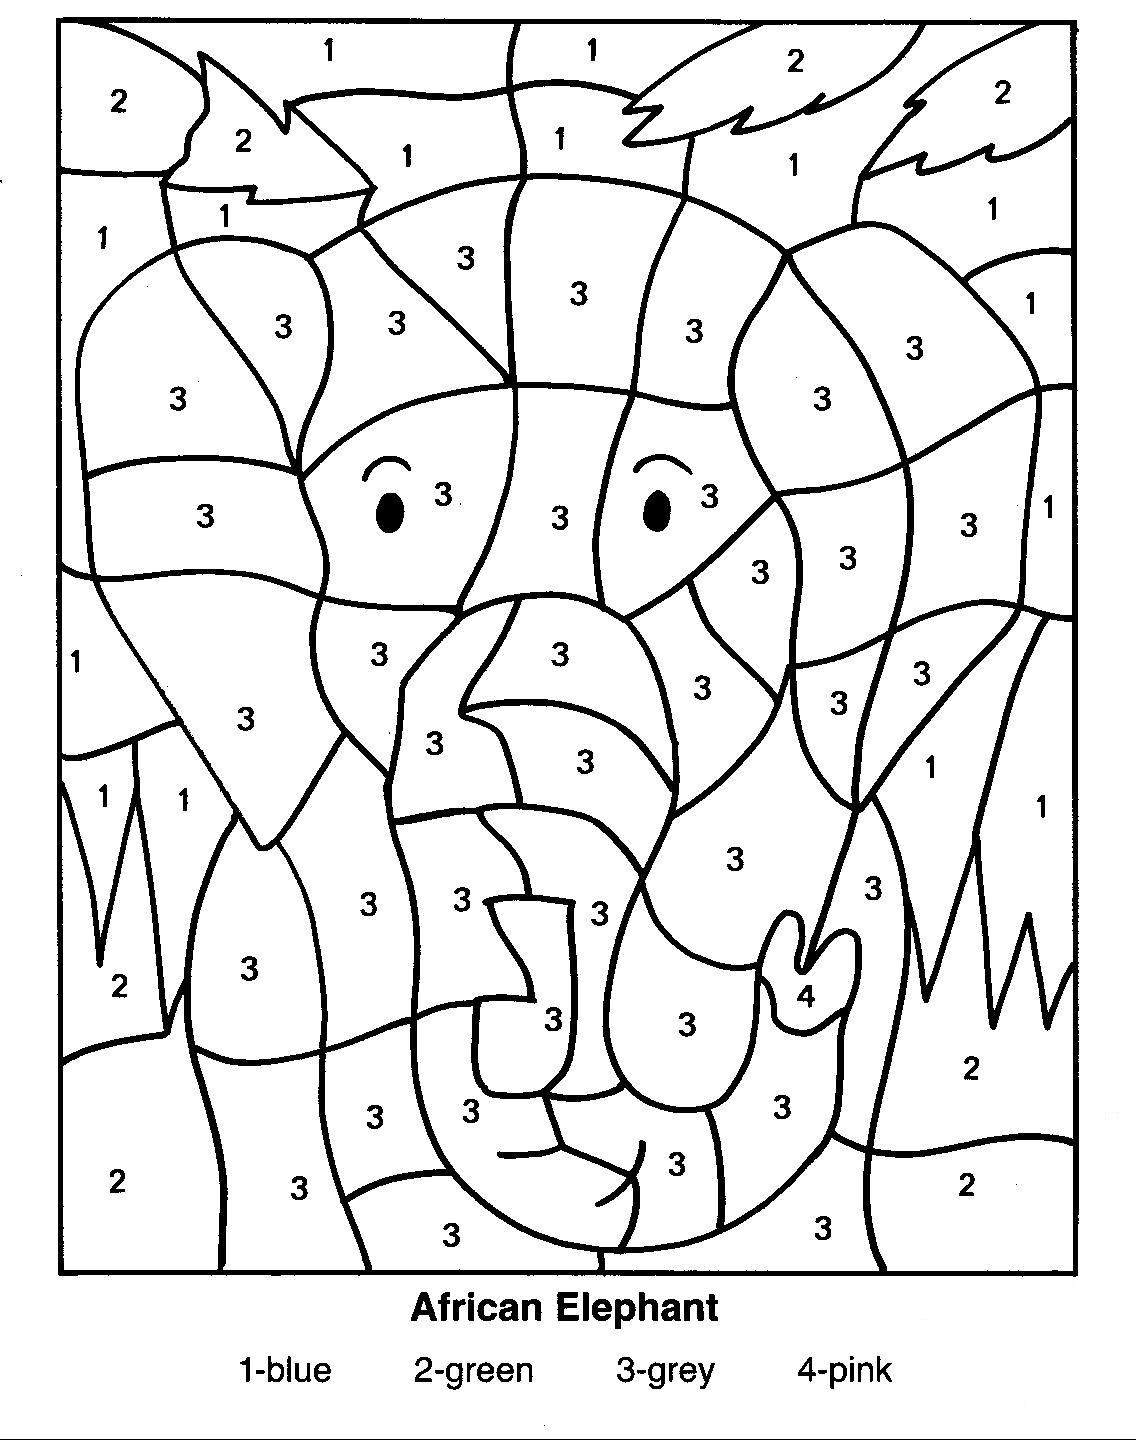 Coloring pages by numbers for adults - Download Number Coloring Pages 10